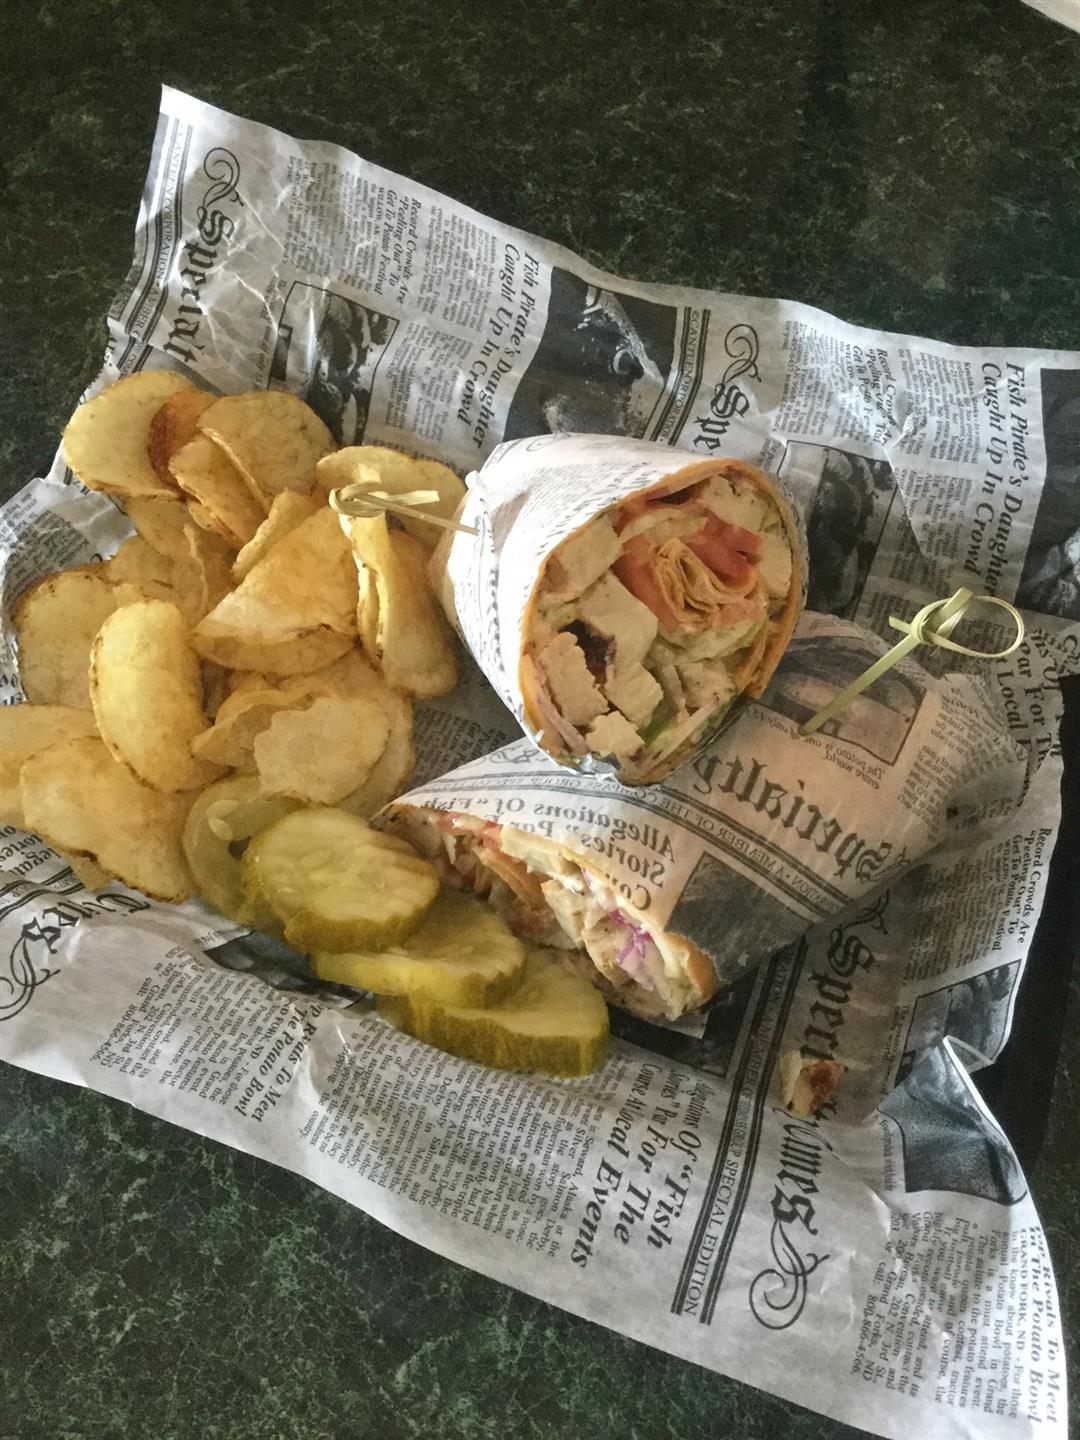 checken wrap with chips and pickles